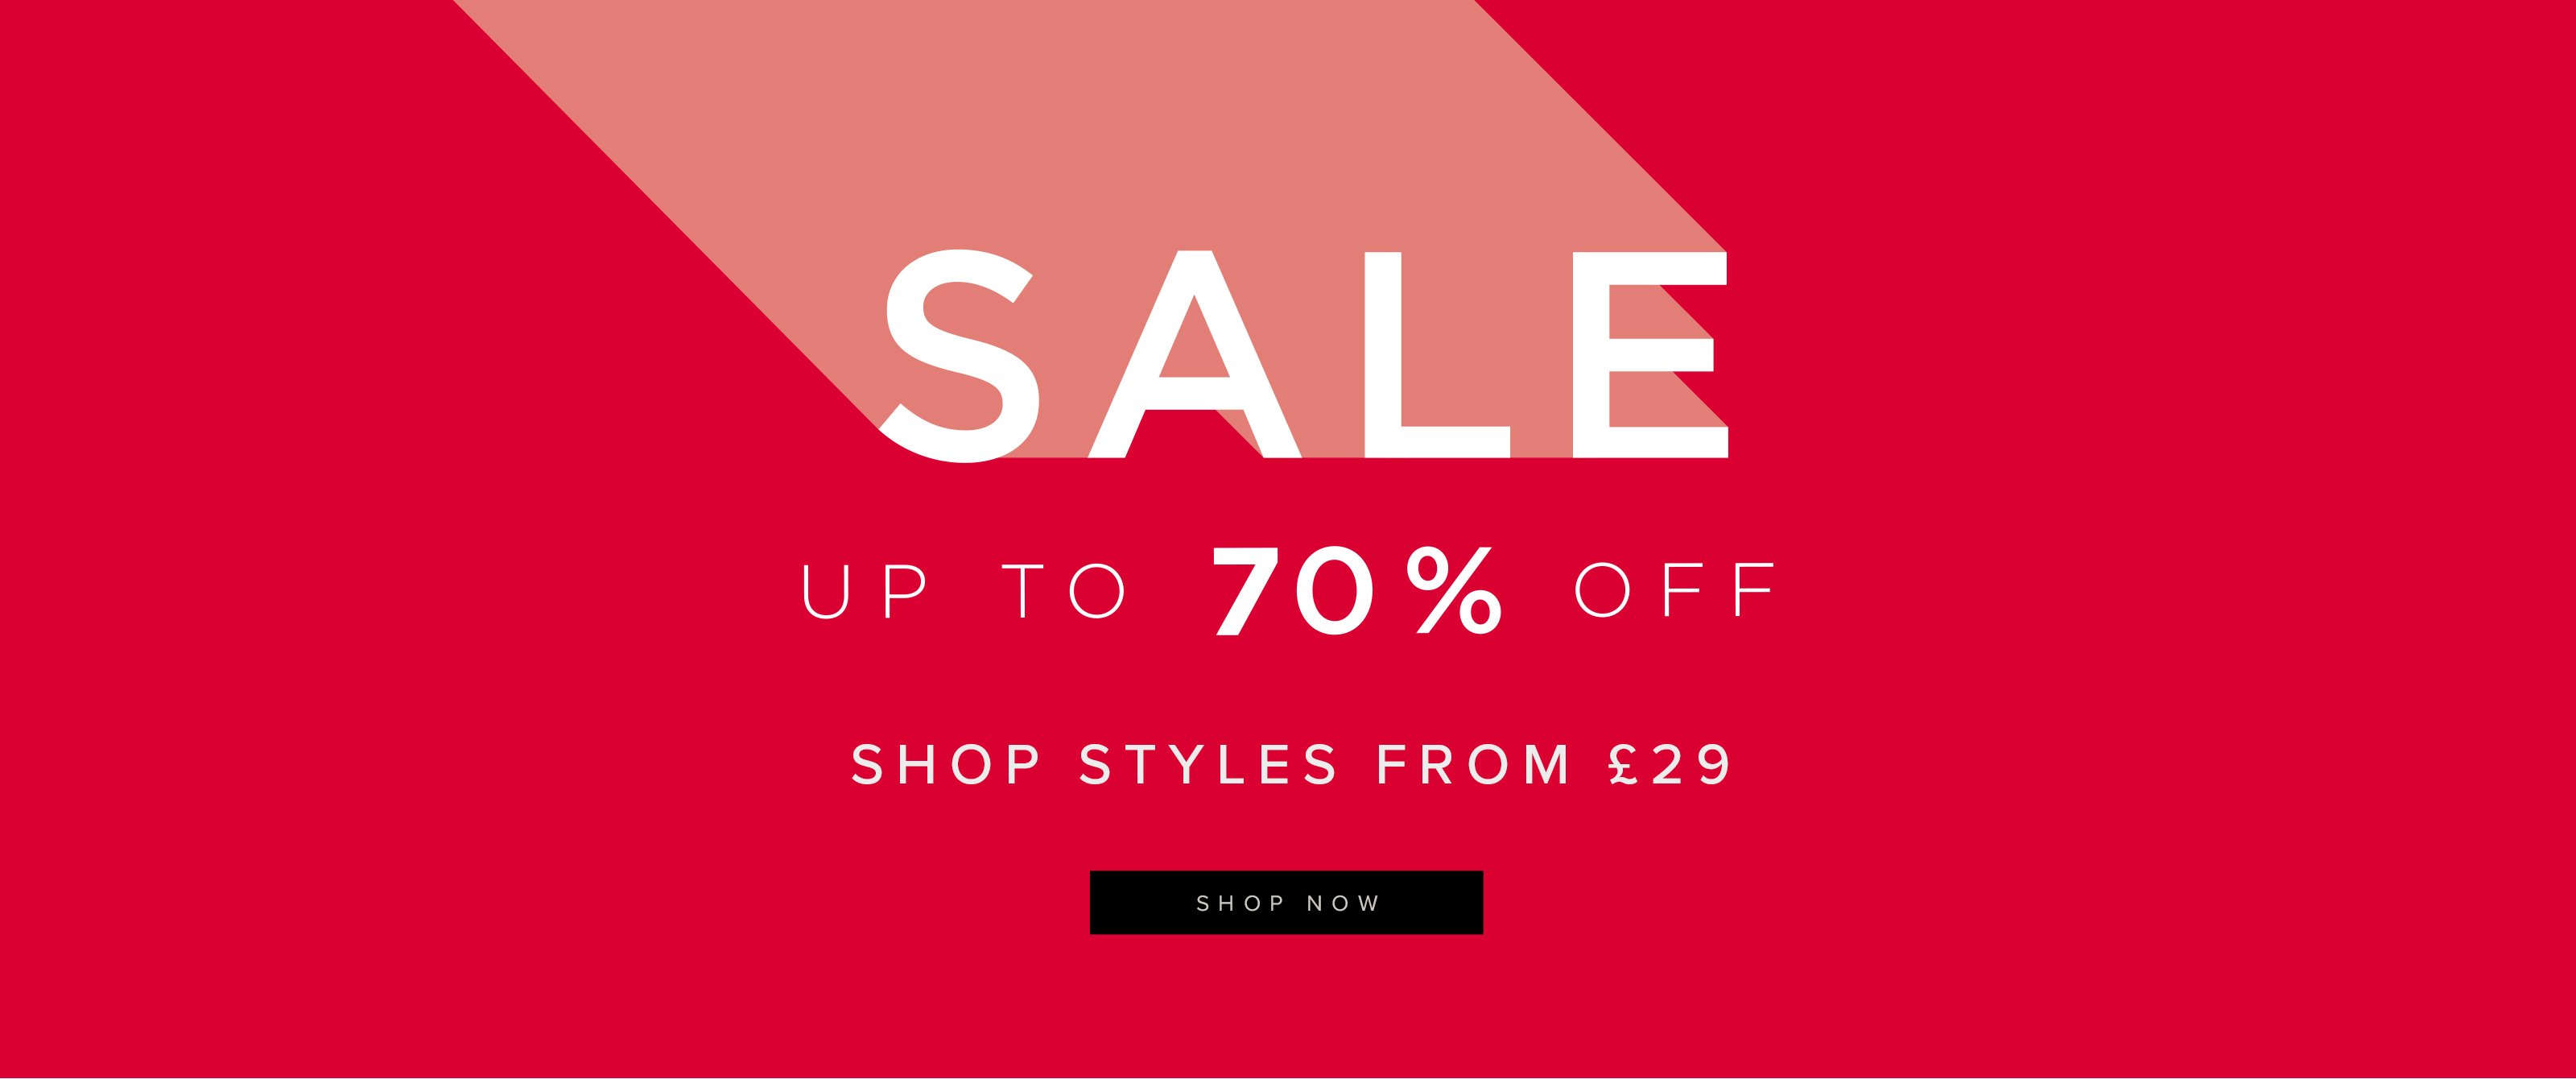 Sale Lines From 29 Pounds